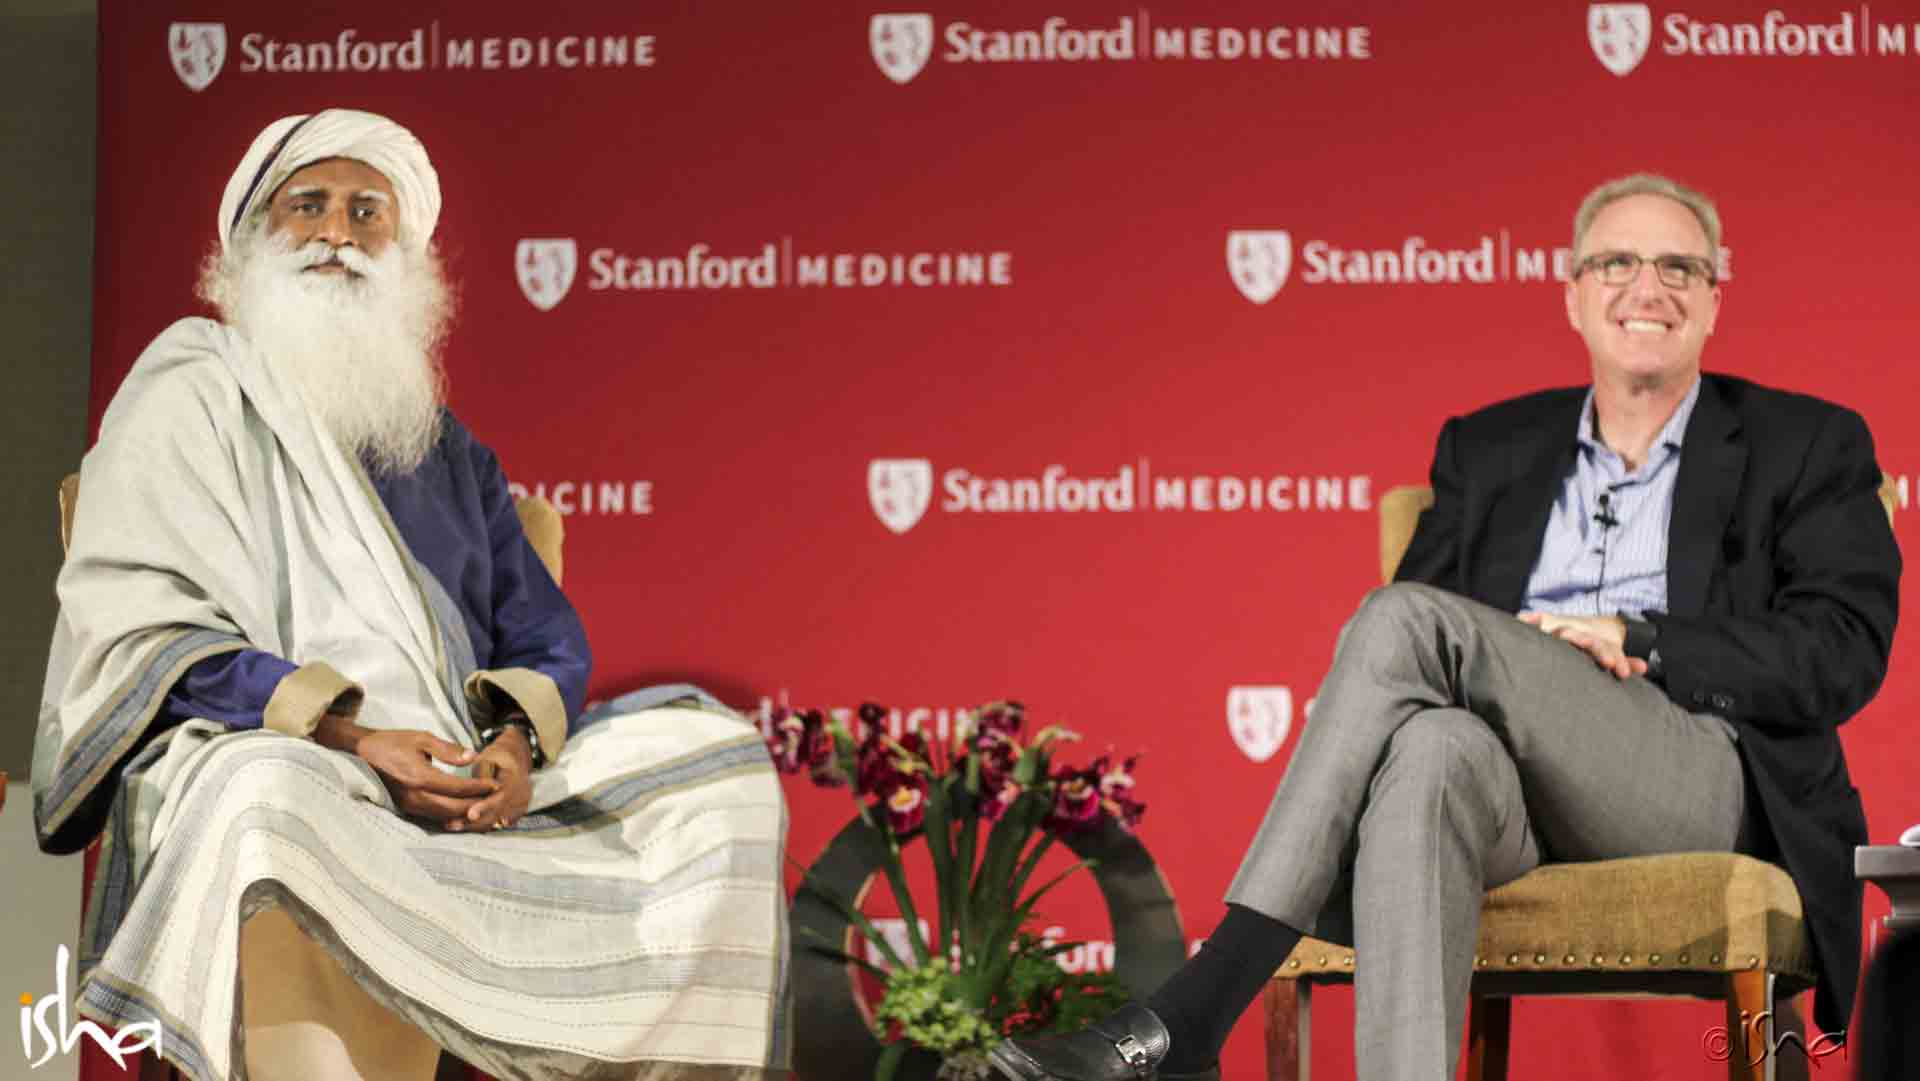 Jonathan Coslet, Chief Investment Officer, Partner, and Senior Partner, TPG Capital, L.P., in conversation with Sadhguru, Stanford University, Stanford, California